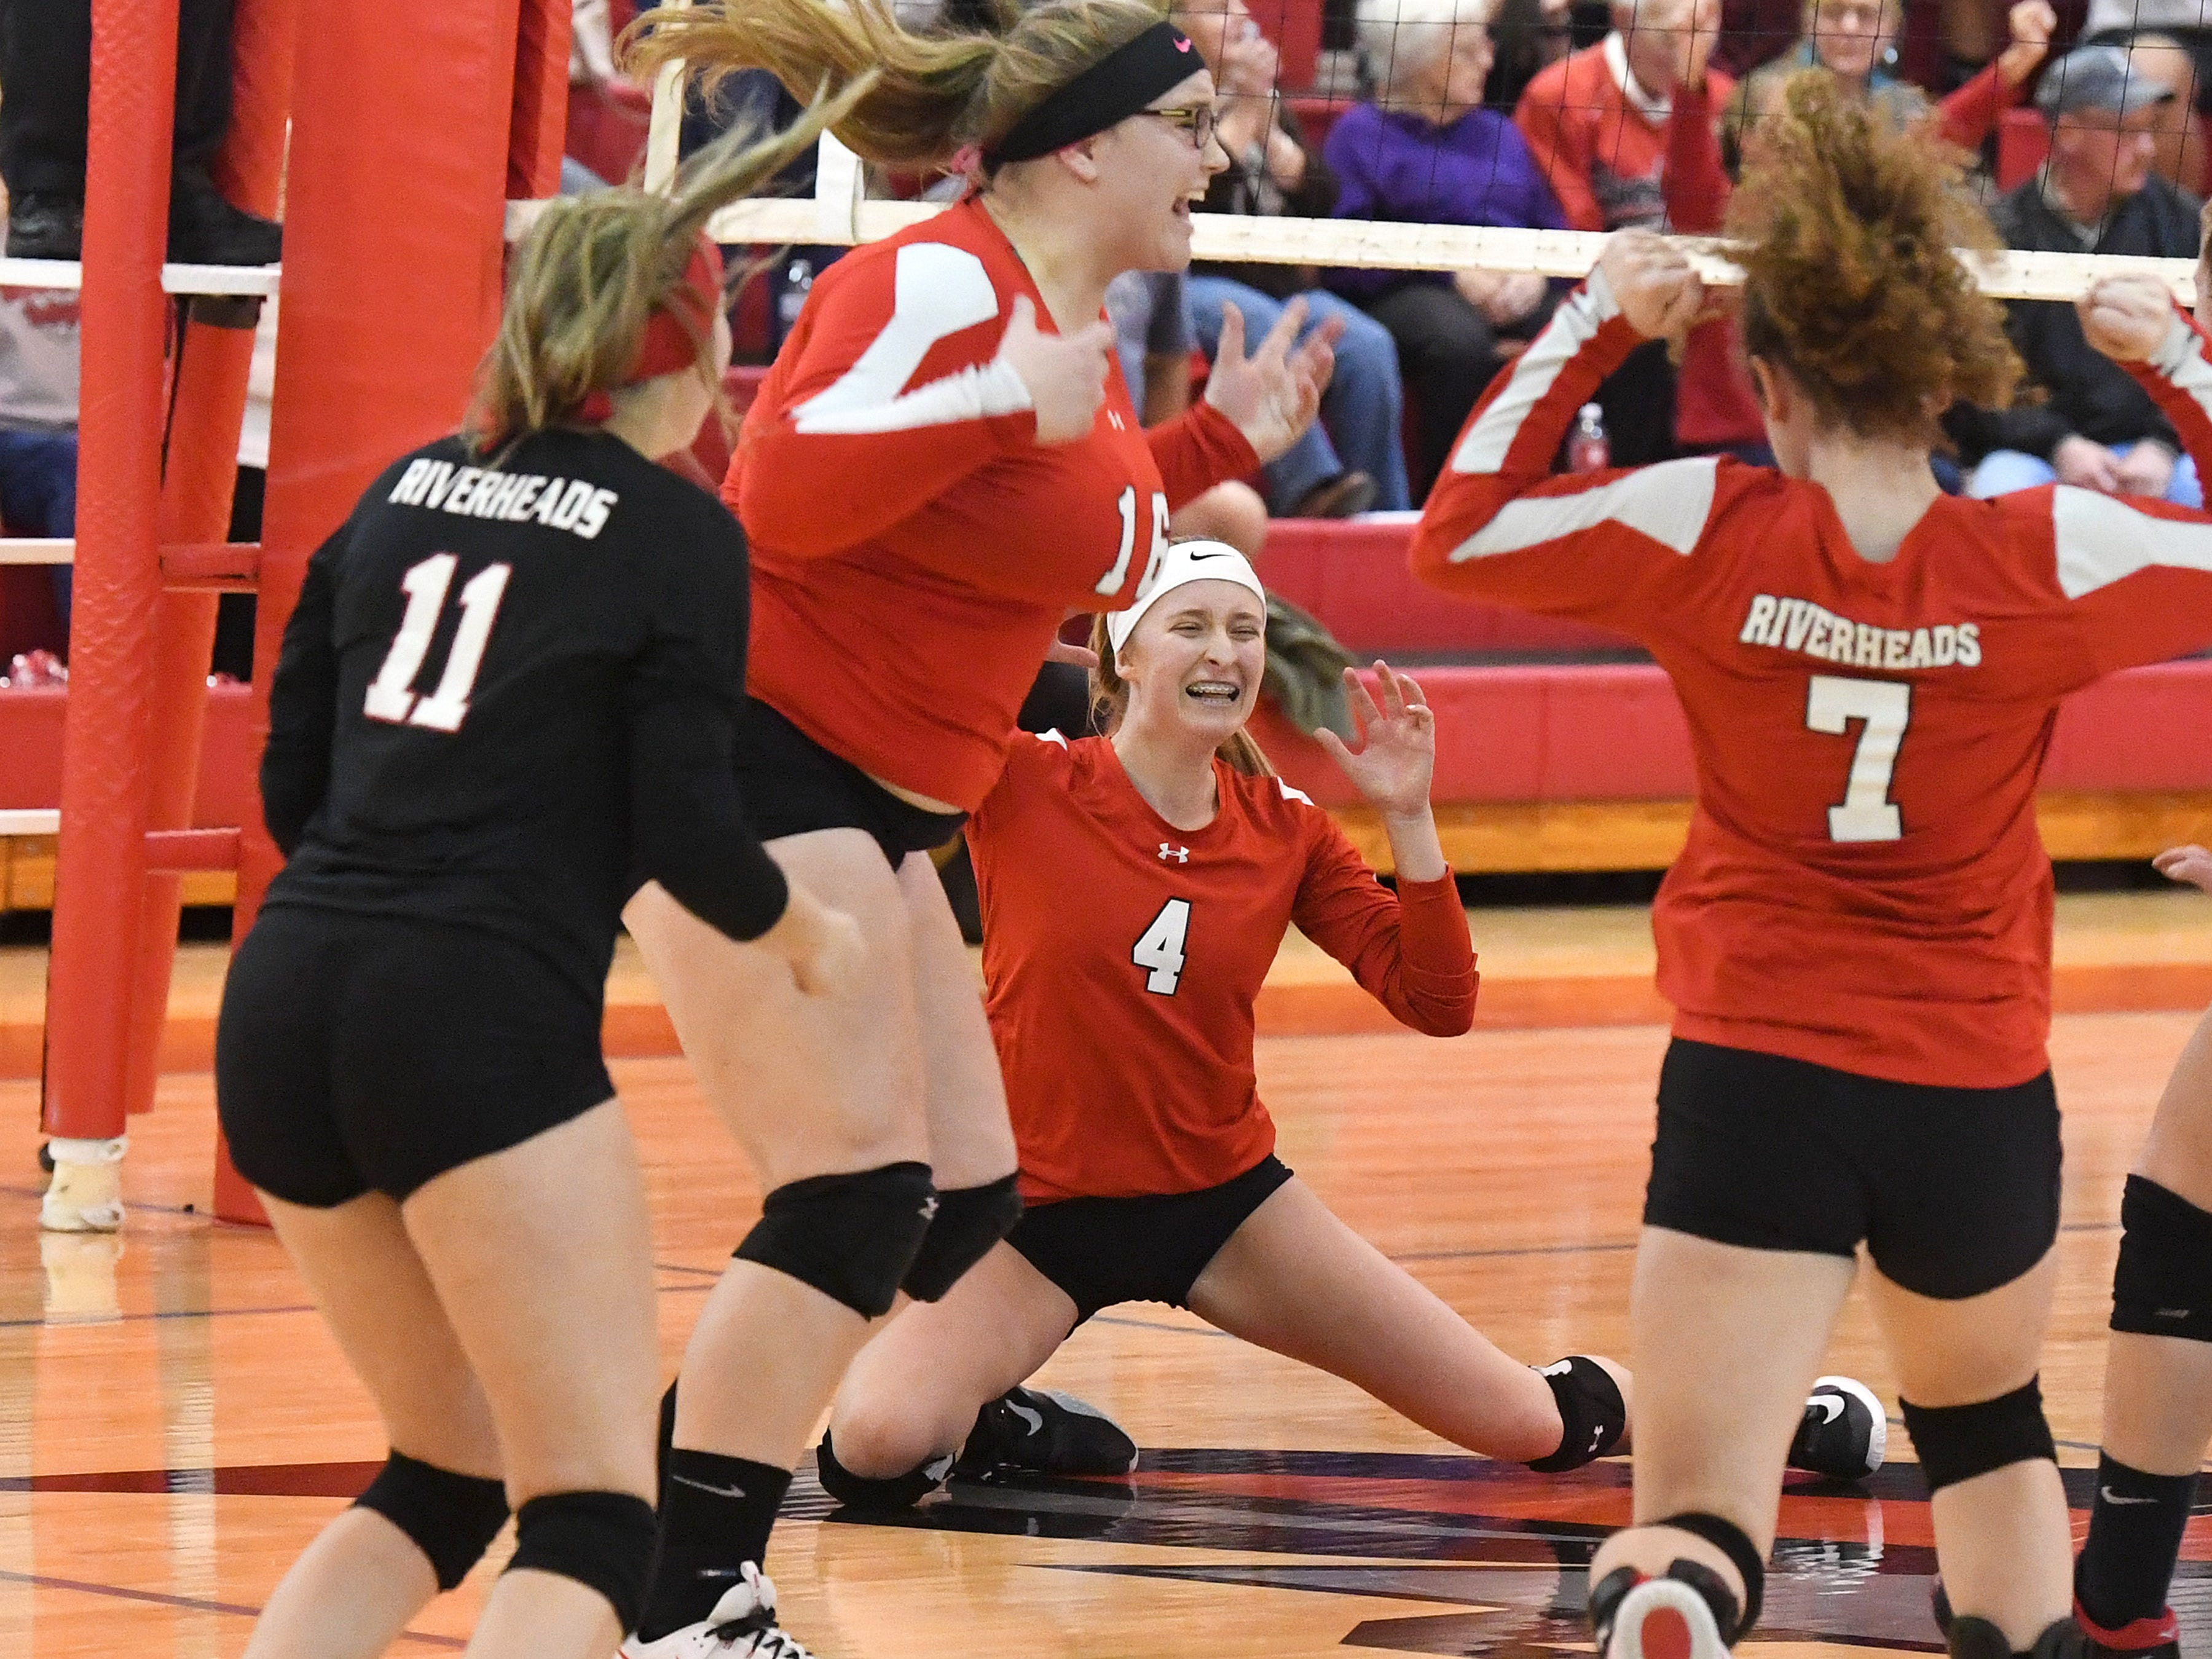 Riverheads players celebrate scoring the final point in the third set to sweep Altavista and win the Region 1B volleyball championship in Greenville on Wednesday, Nov. 7, 2018.